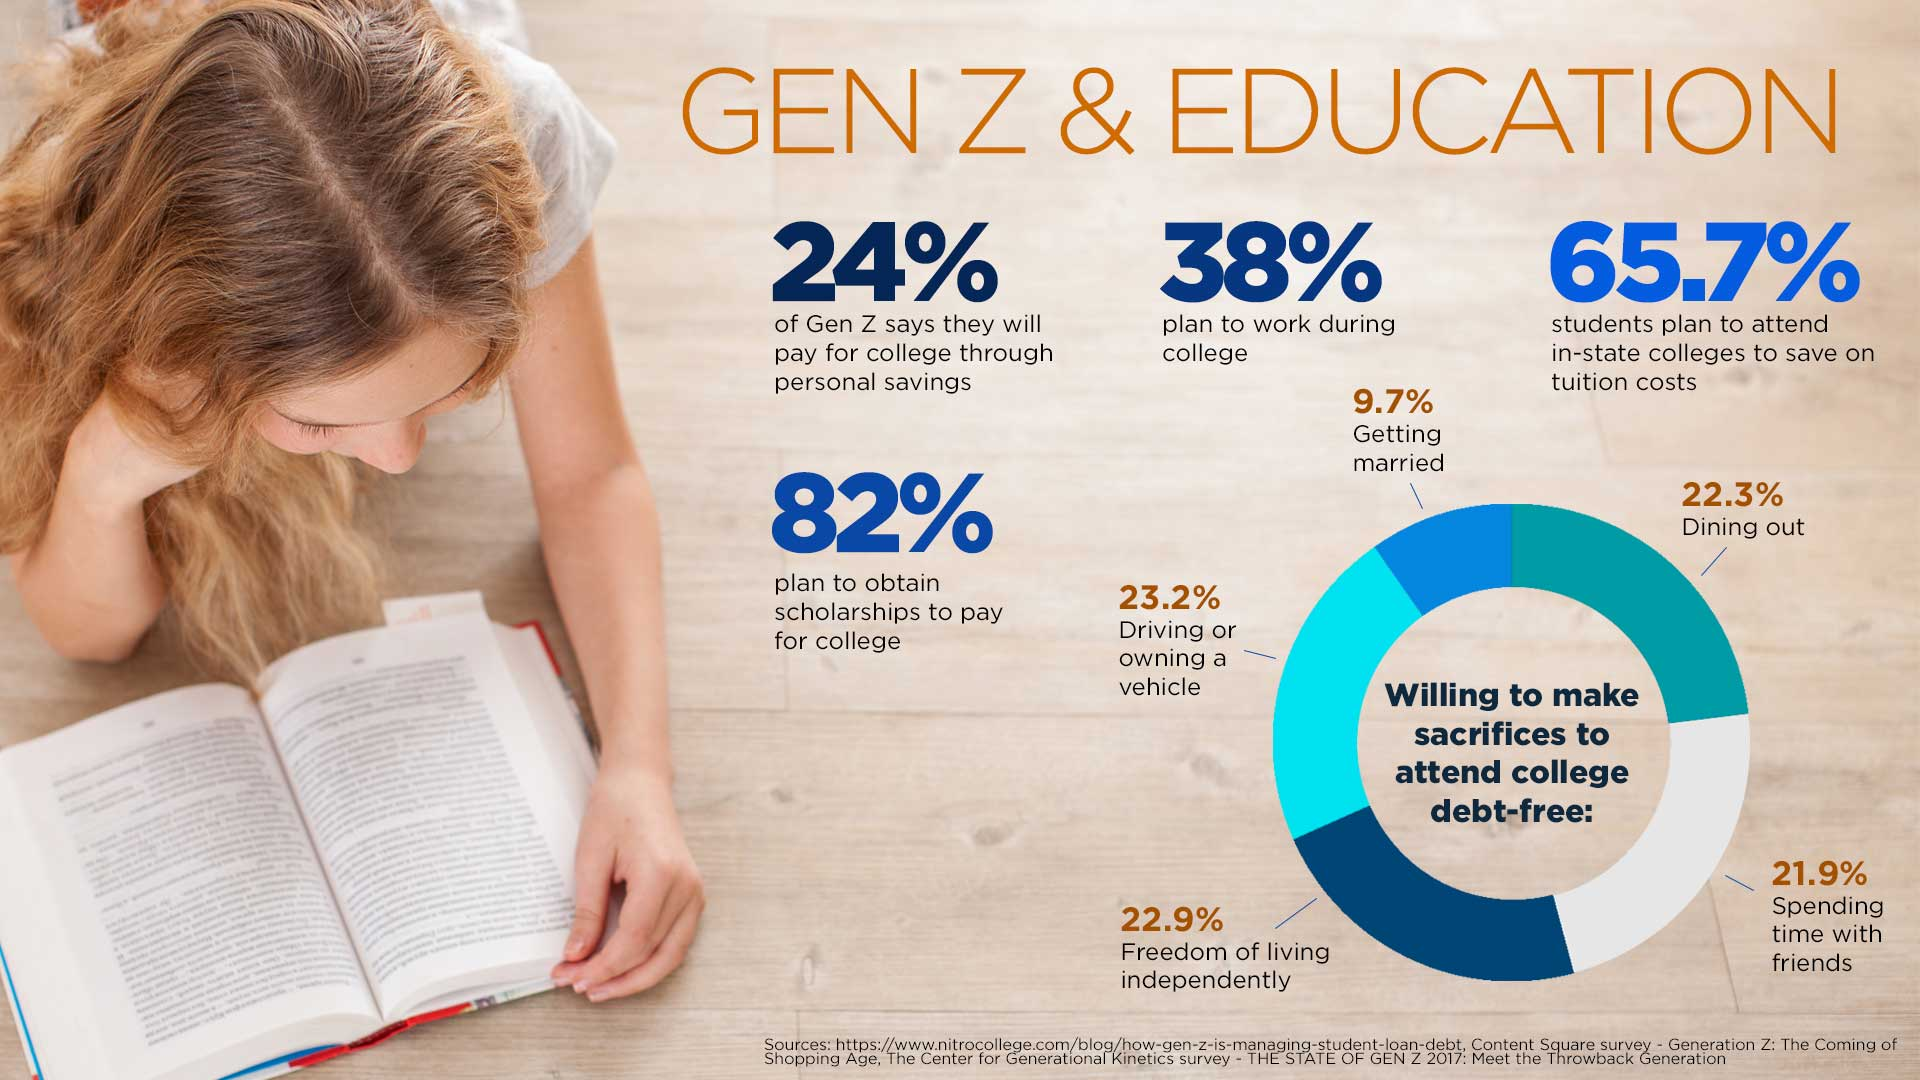 24% of Gen Z says they will pay for college through personal savings 38% plan to work during college 65.7% of Gen Z students plan to attend in-state colleges to save on tuition costs Willing to make sacrifices to attend college debt-free: Driving or owning a vehicle (23.2%) Freedom of living independently (22.9%) Dining out (22.3%) Spending time with friends (21.9%) Getting married (9.7%) 82% plan to obtain scholarships to pay for college